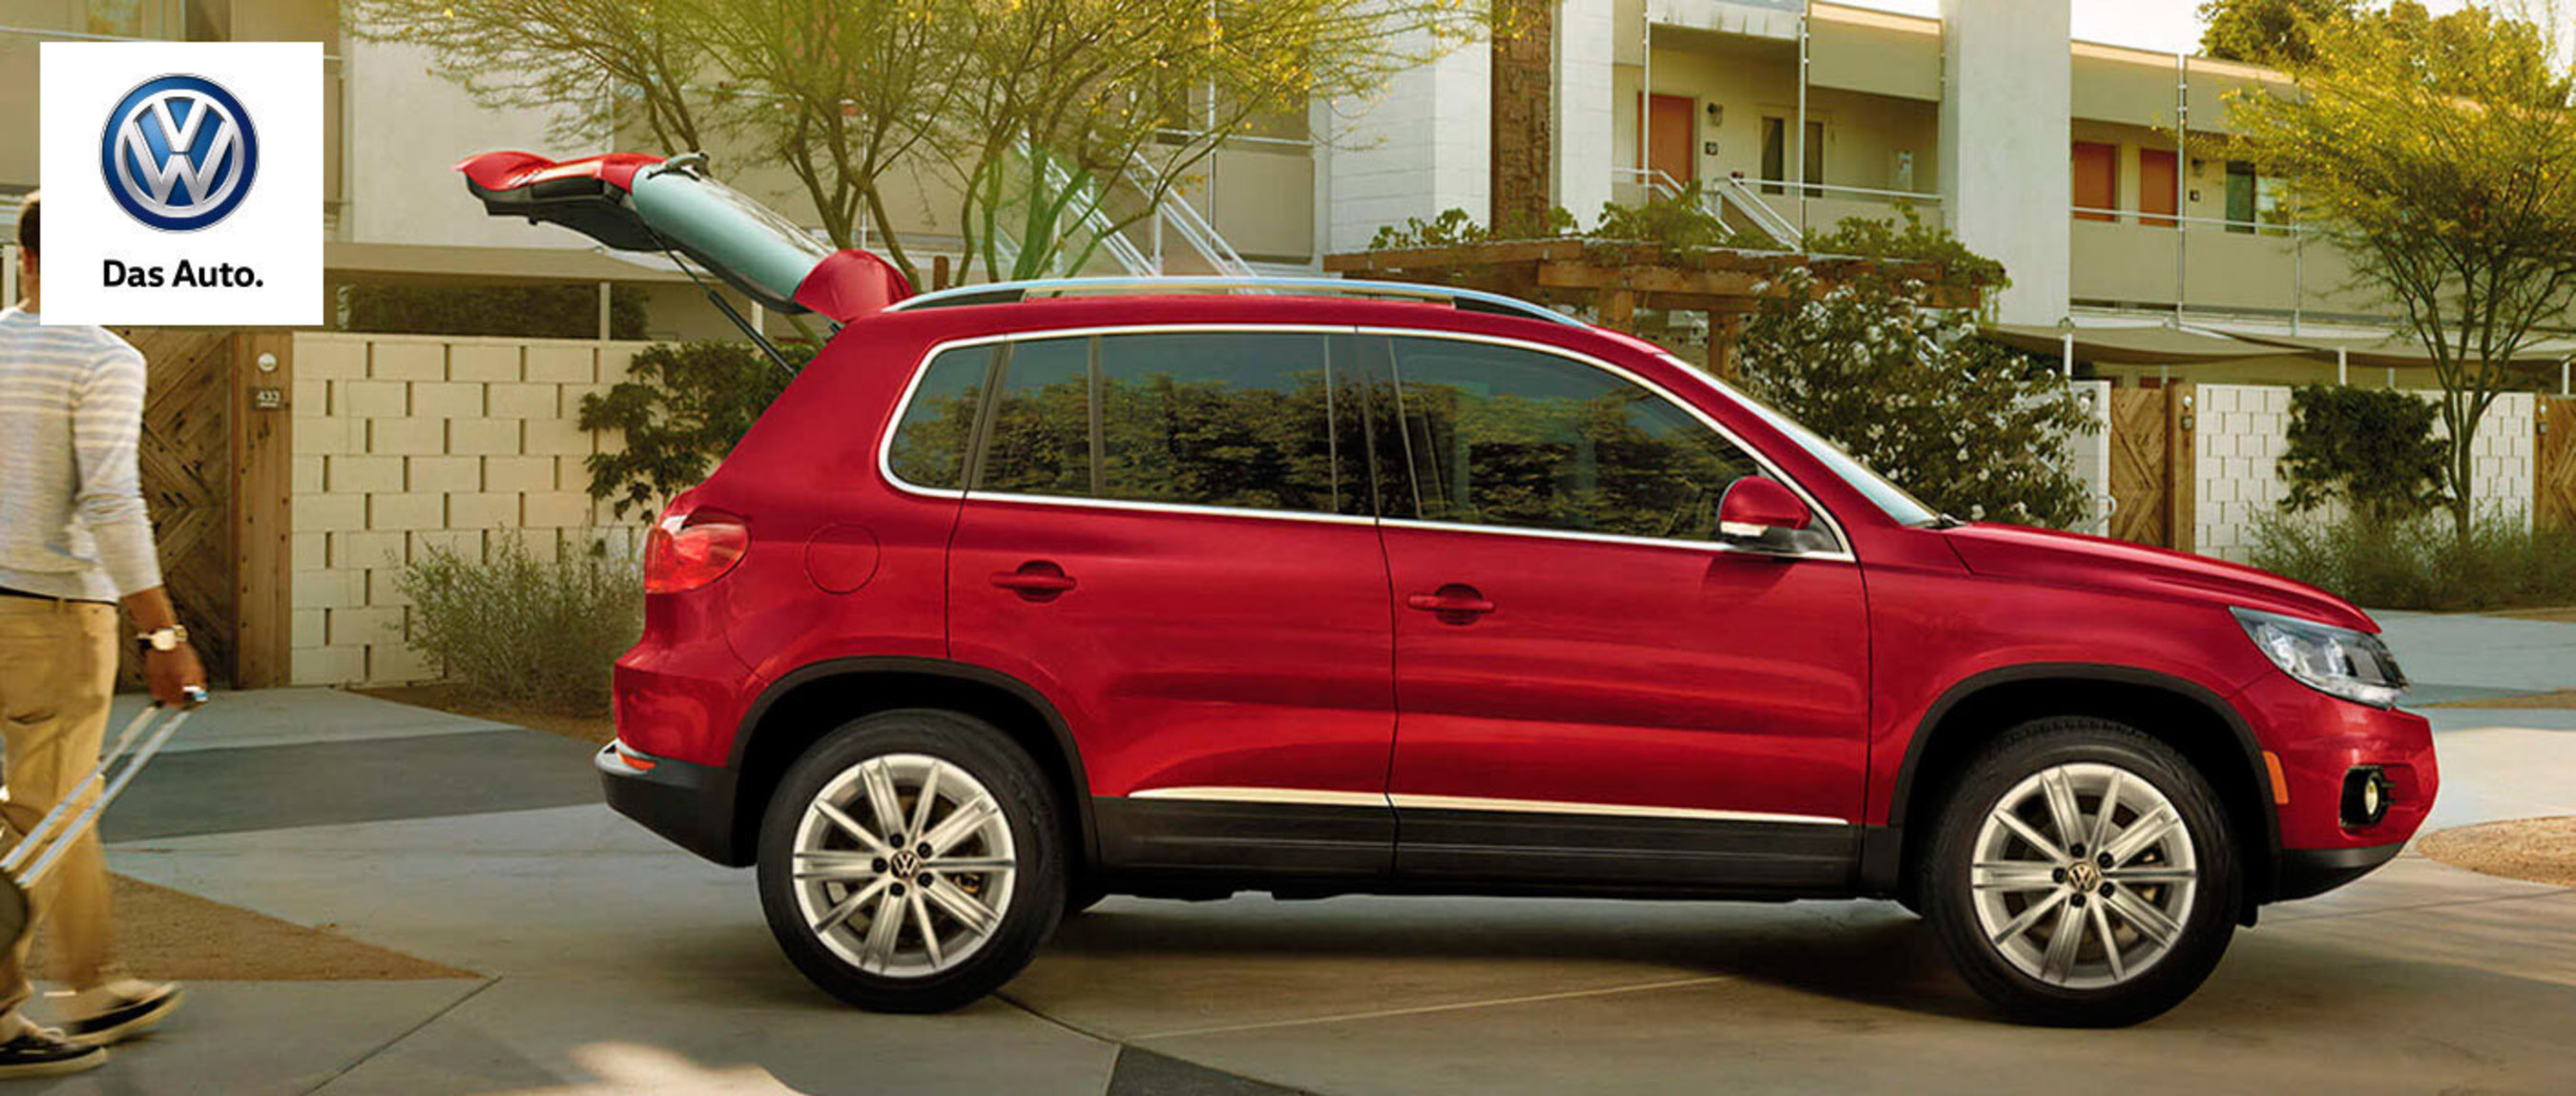 Local dealership offers comprehensive research on 2015 Volkswagen Tiguan and Touareg